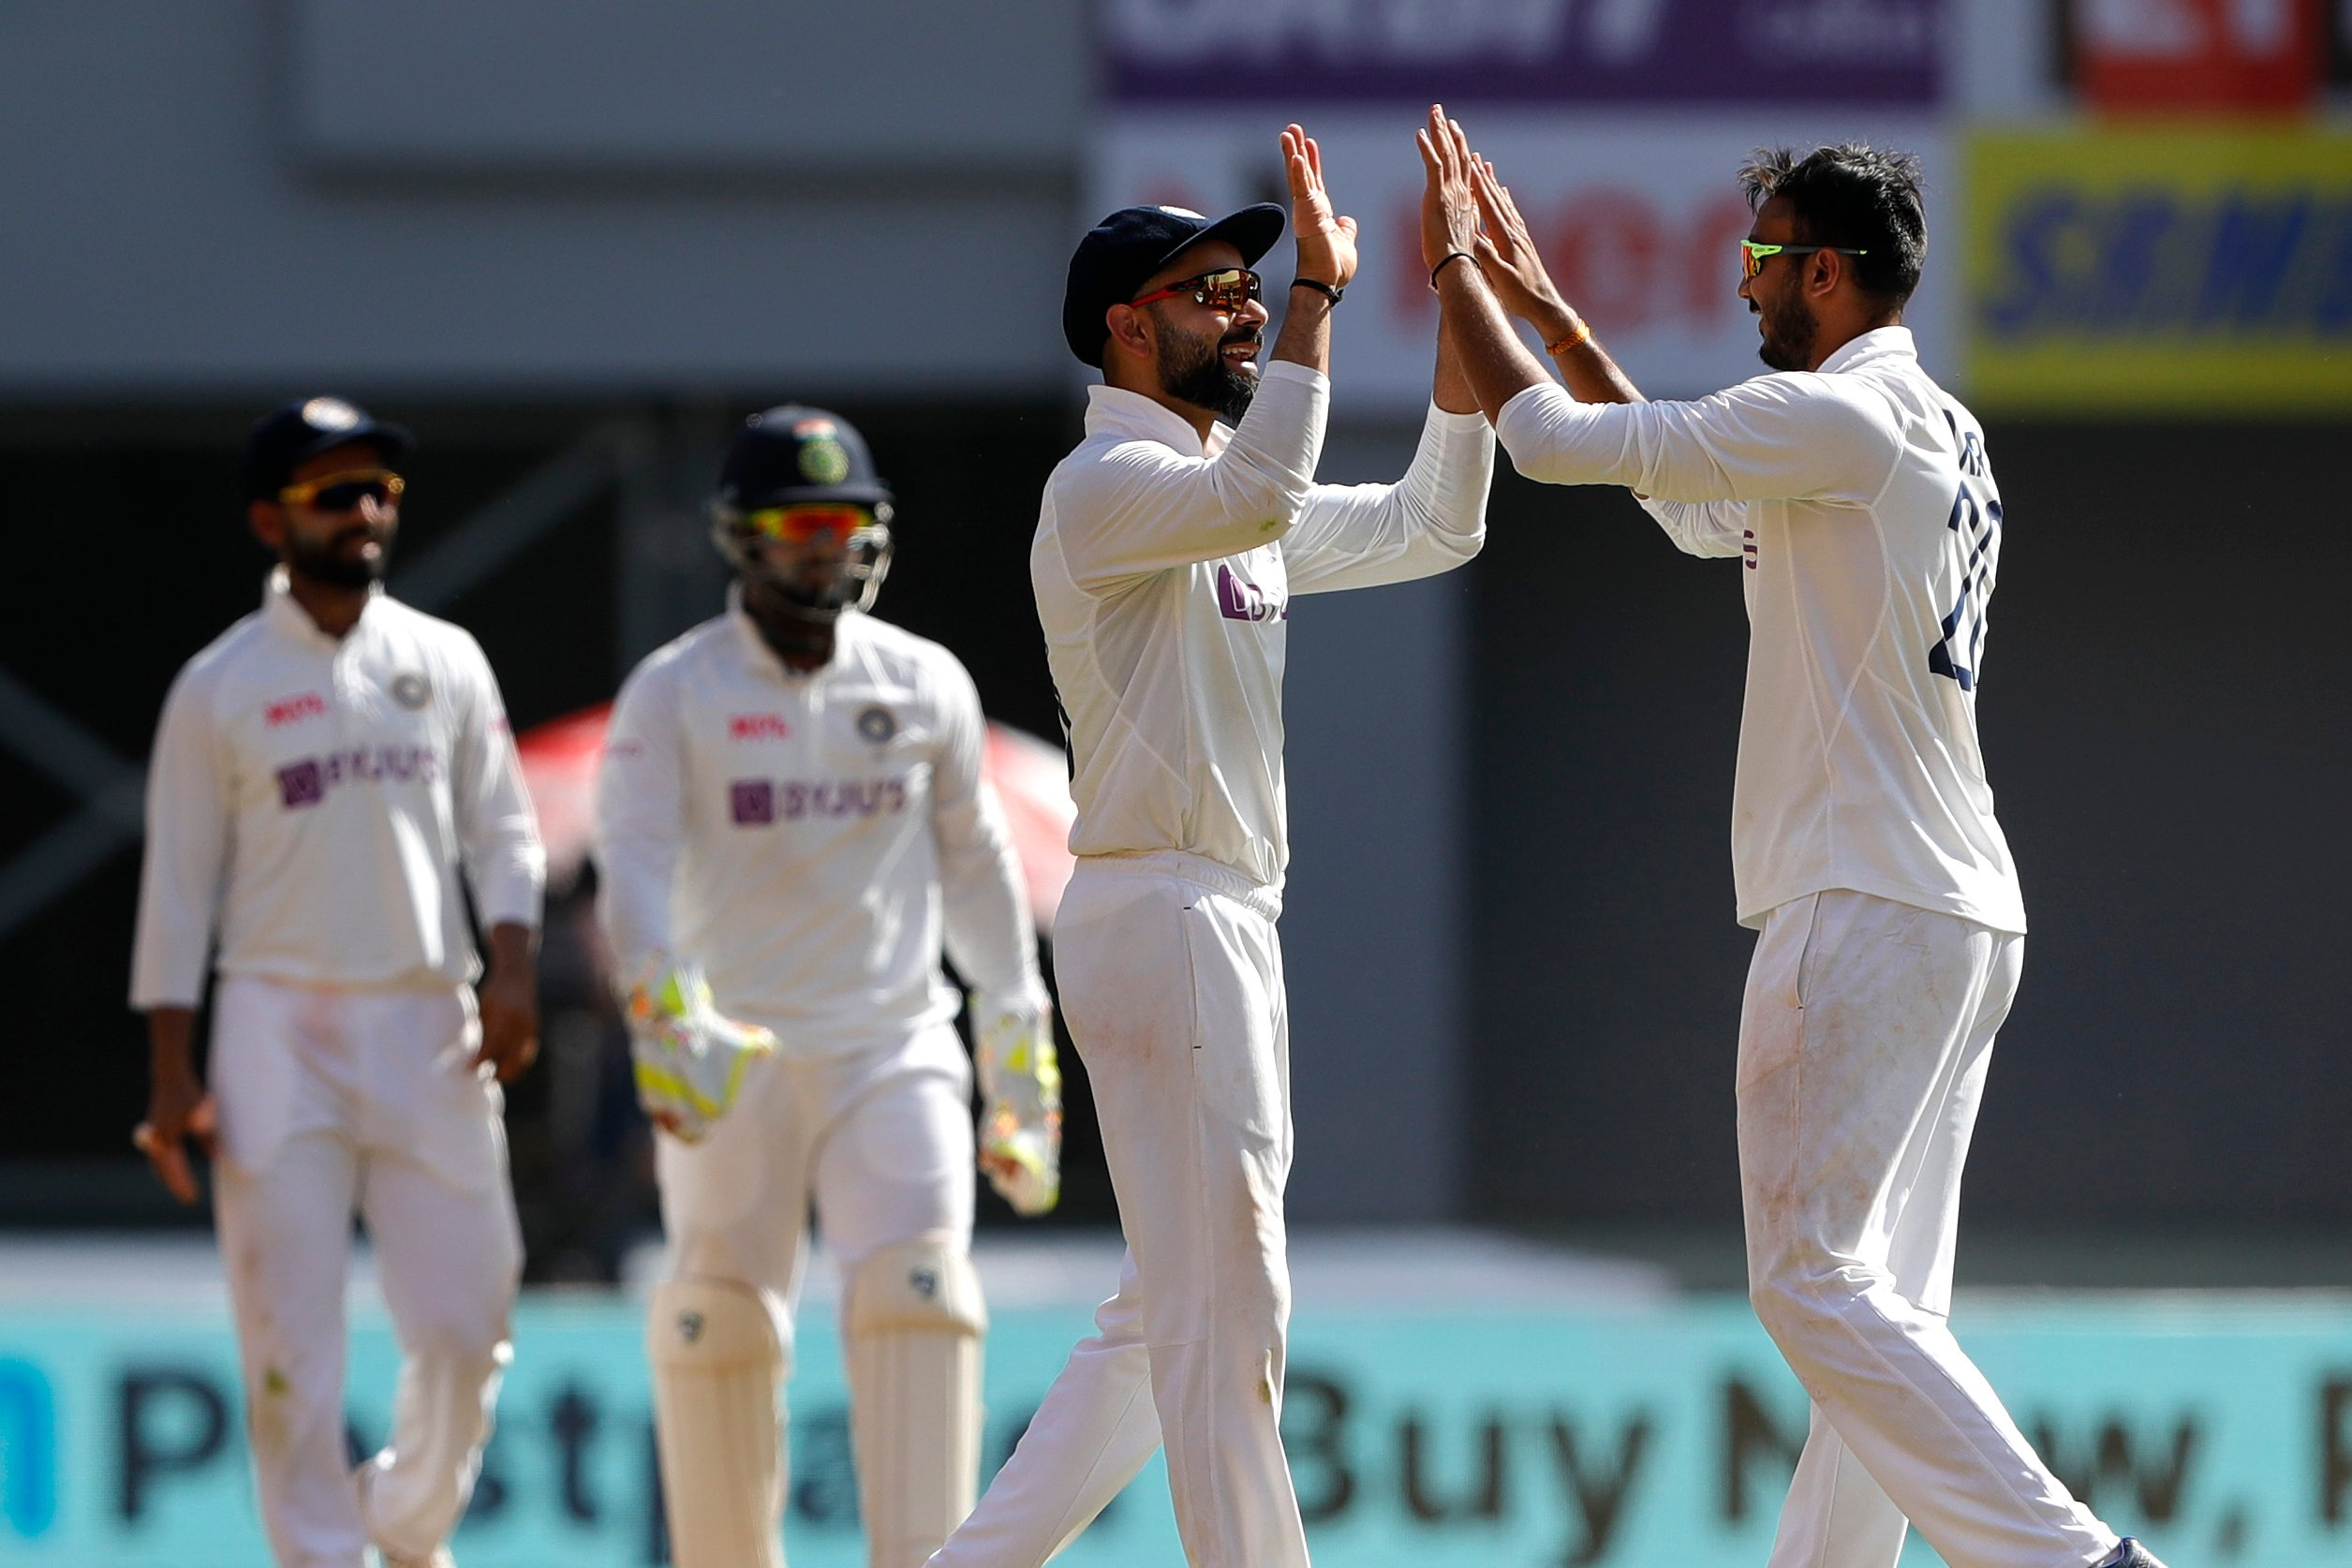 4th Test Day 1